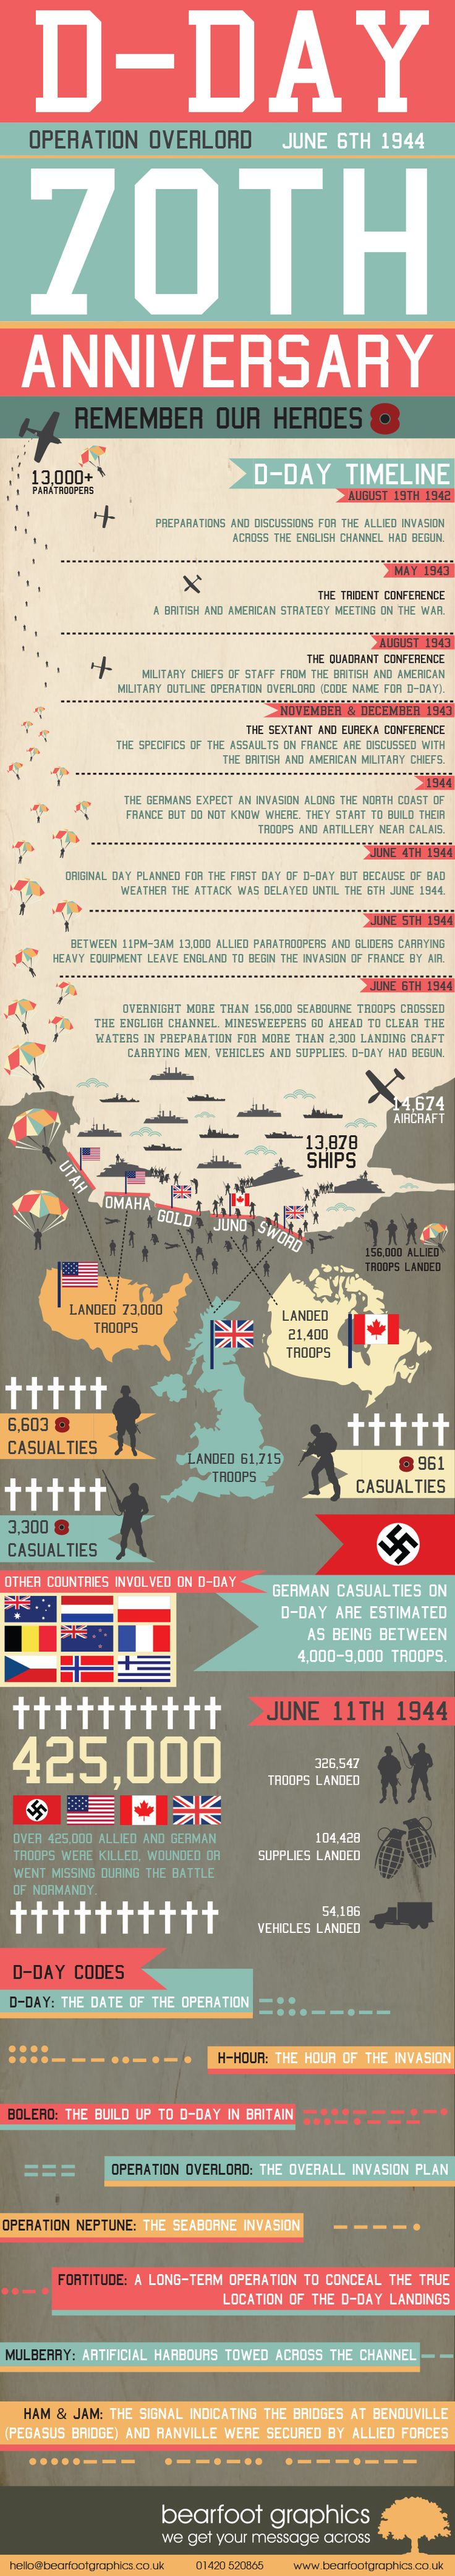 d day commemorative images